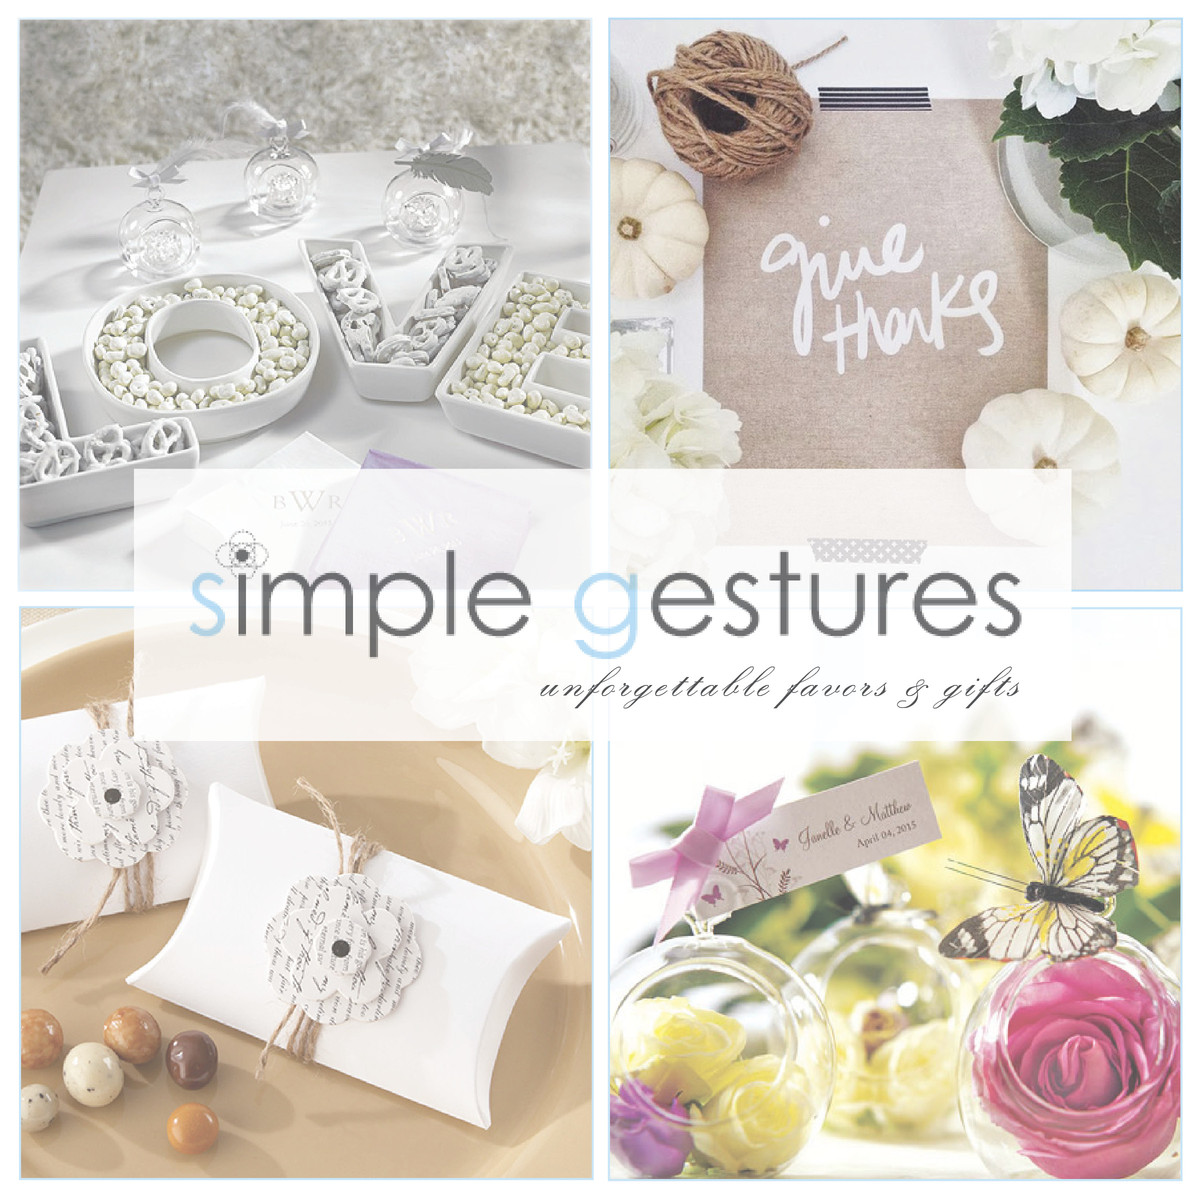 Simple Gestures - Favors & Gifts - Nationwide, NY - WeddingWire